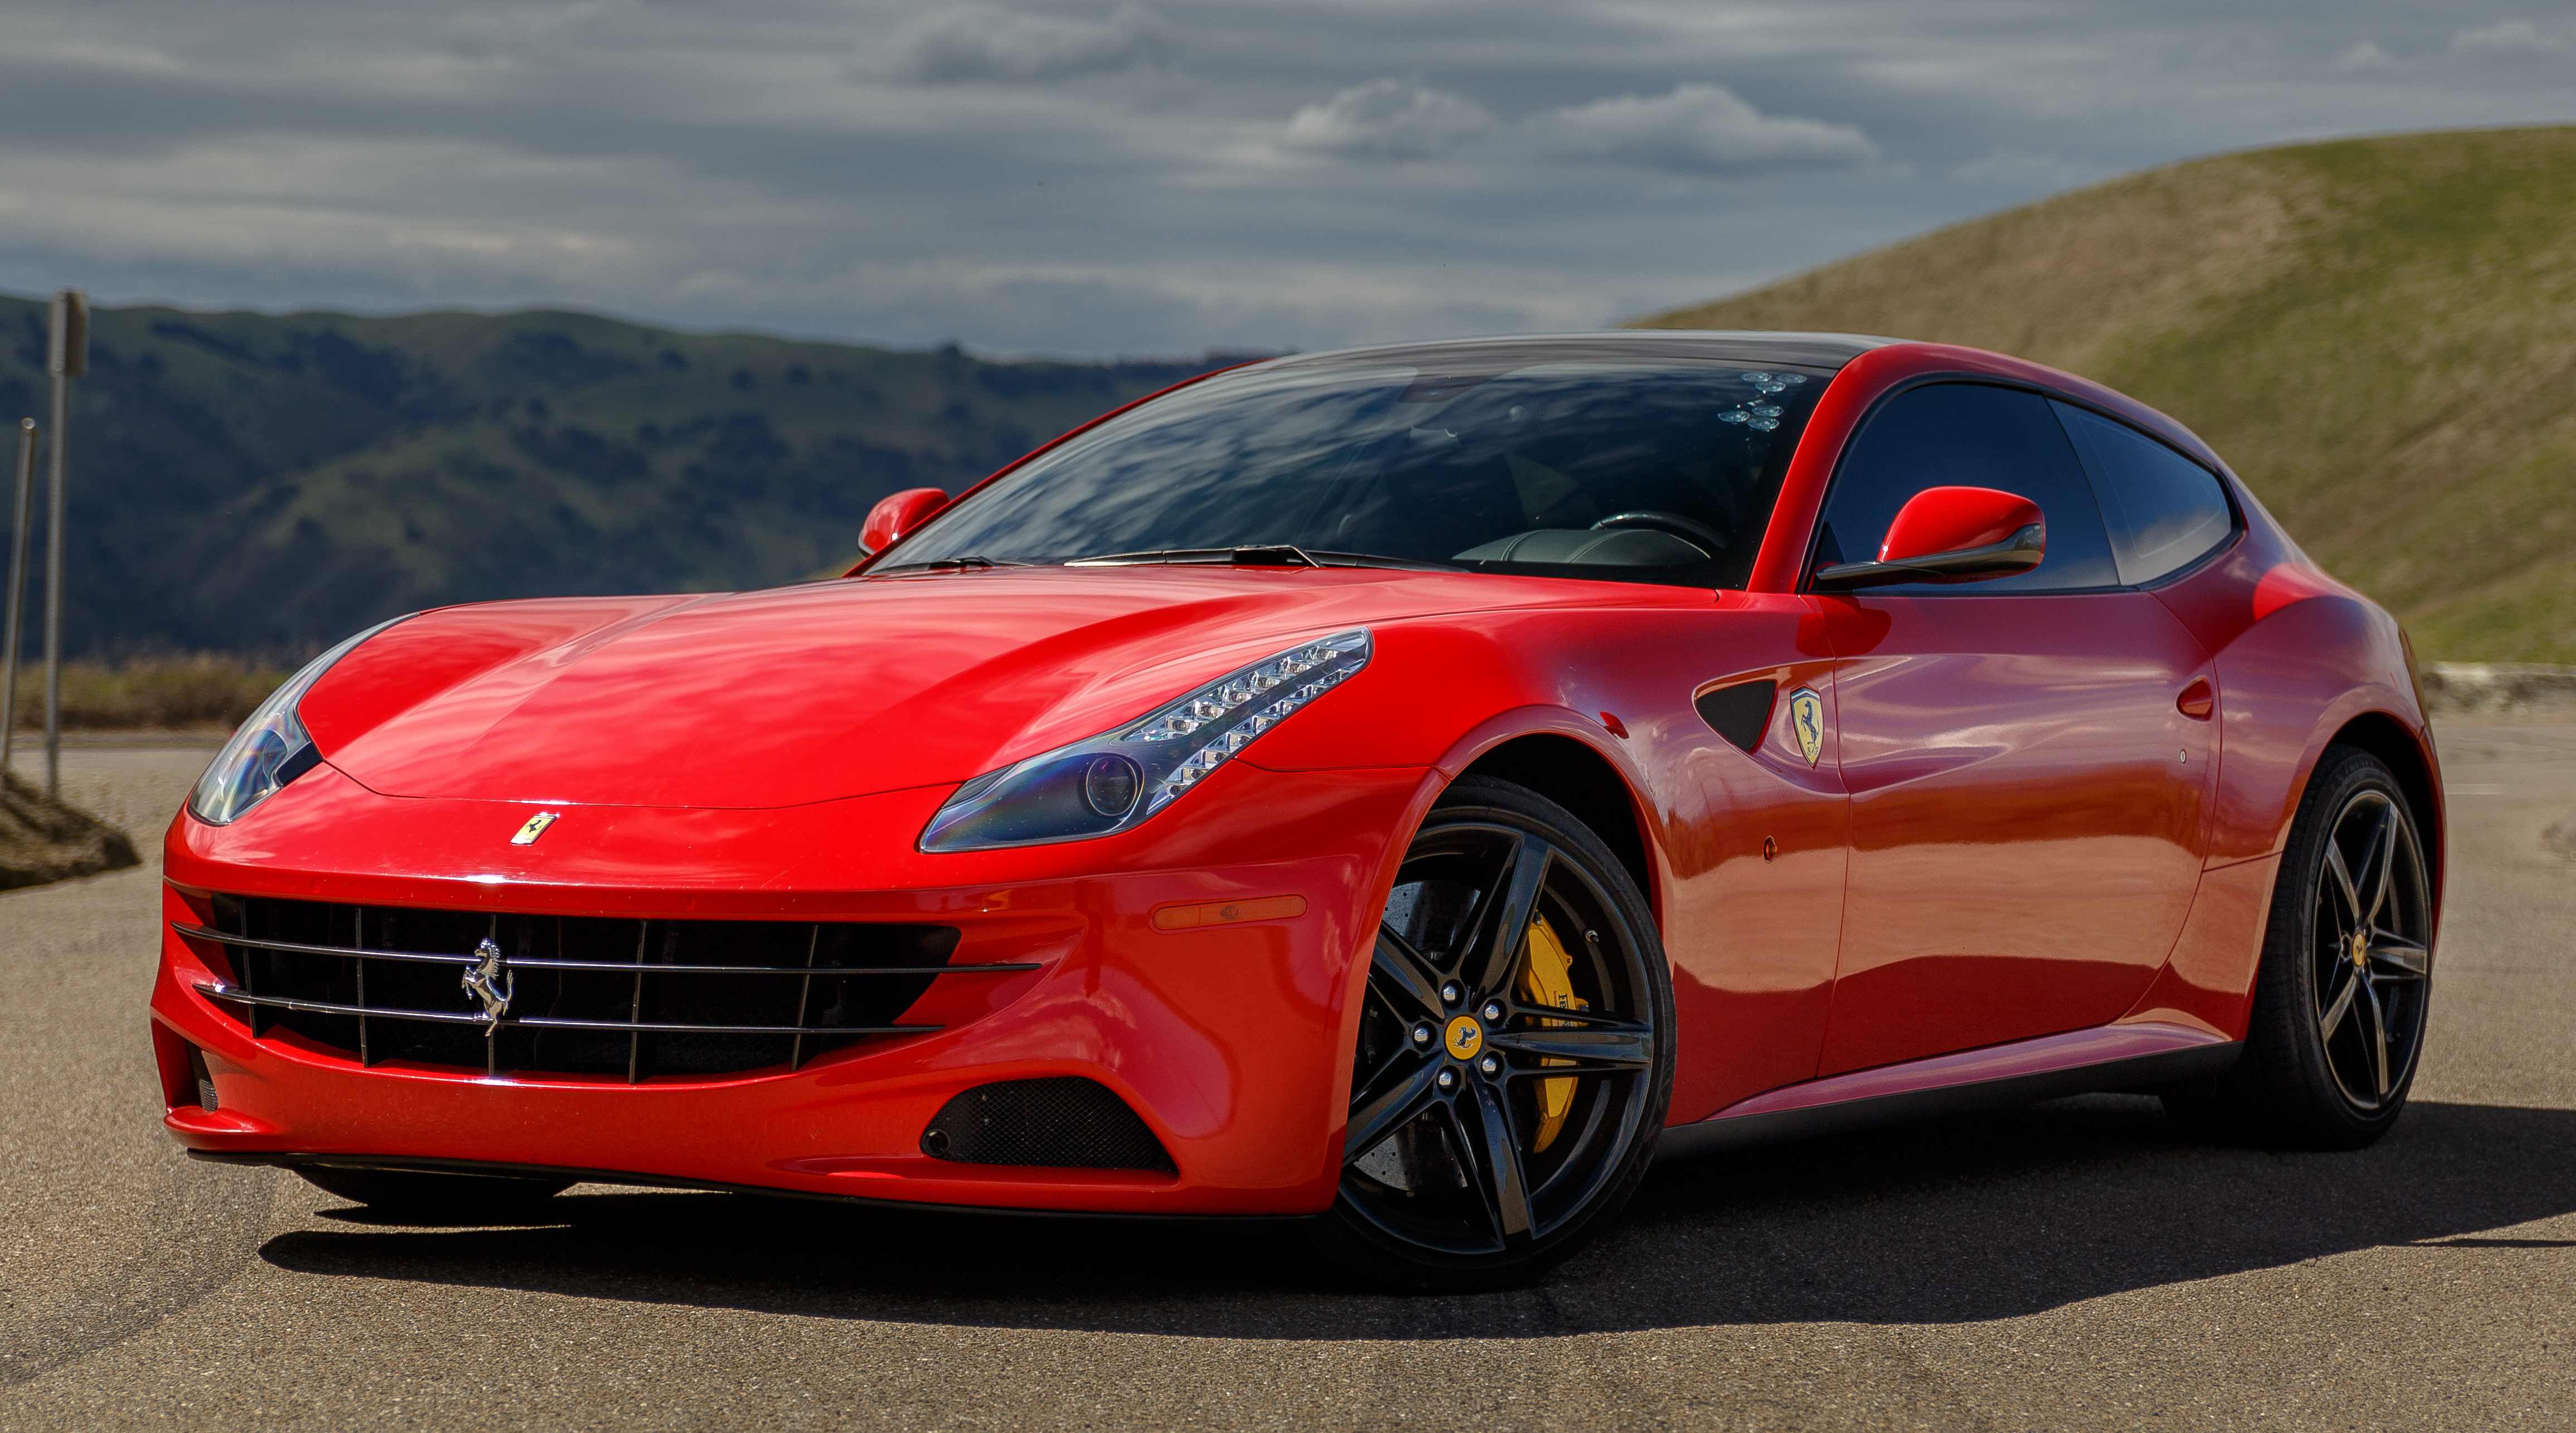 exotic with it without car global rentals is about state us ferrari groupon mission most fleet vehicles exceptional and our we exciting provide do of the rental in luxurious to clients want